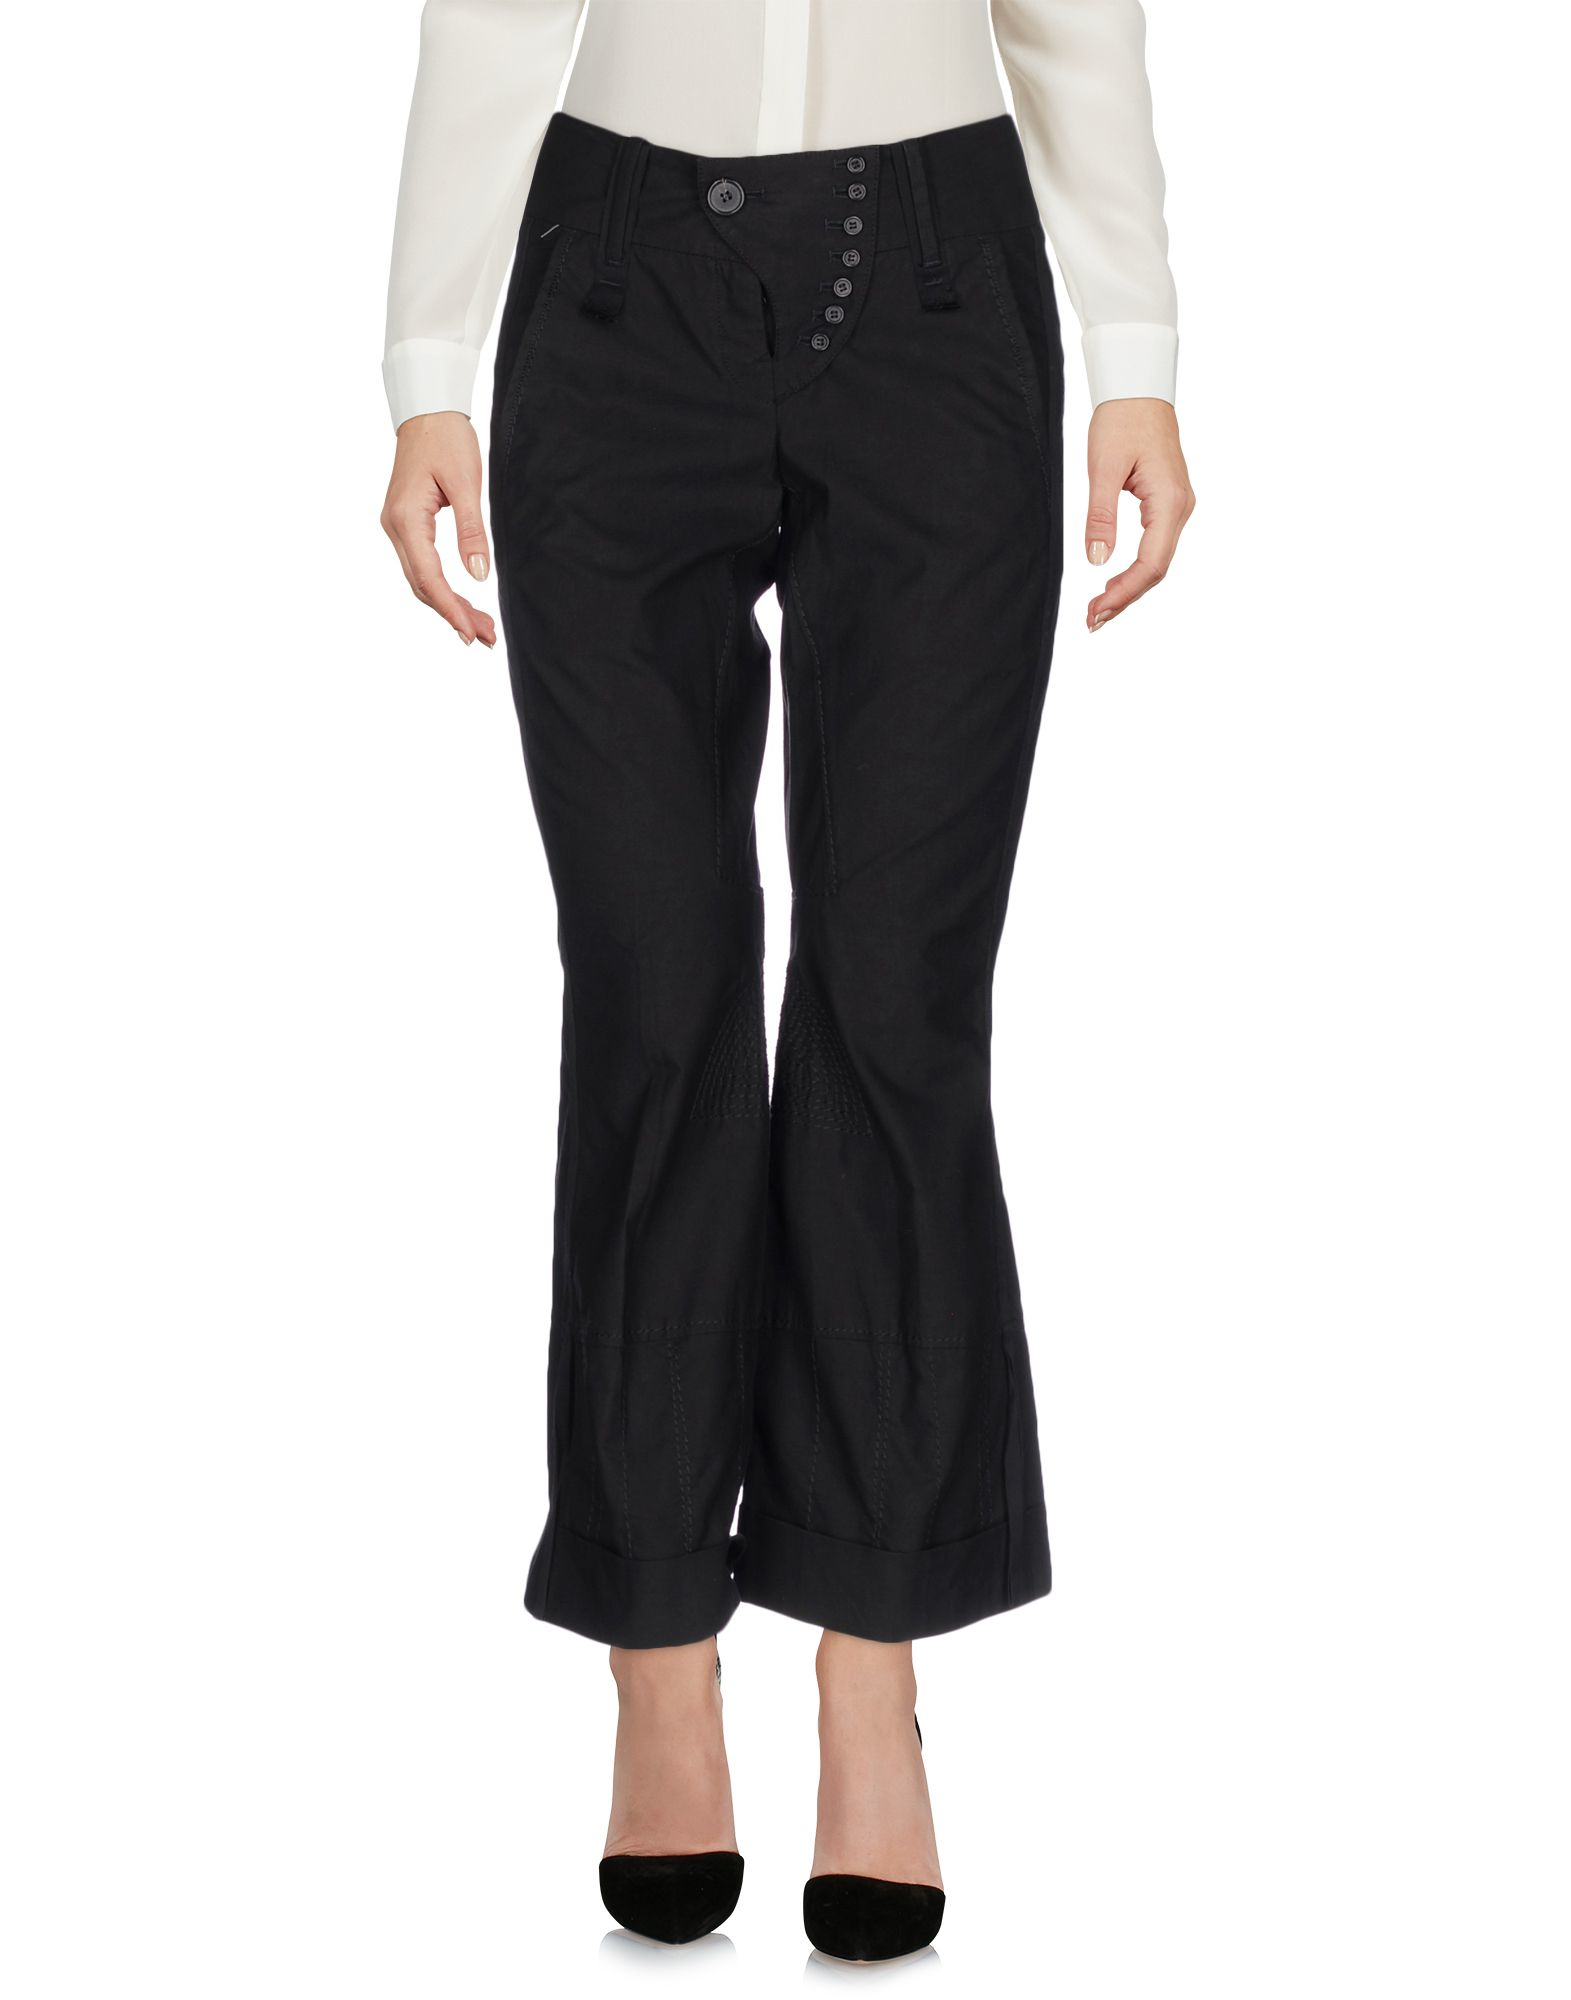 marith et fran ois girbaud casual pants in black lyst. Black Bedroom Furniture Sets. Home Design Ideas